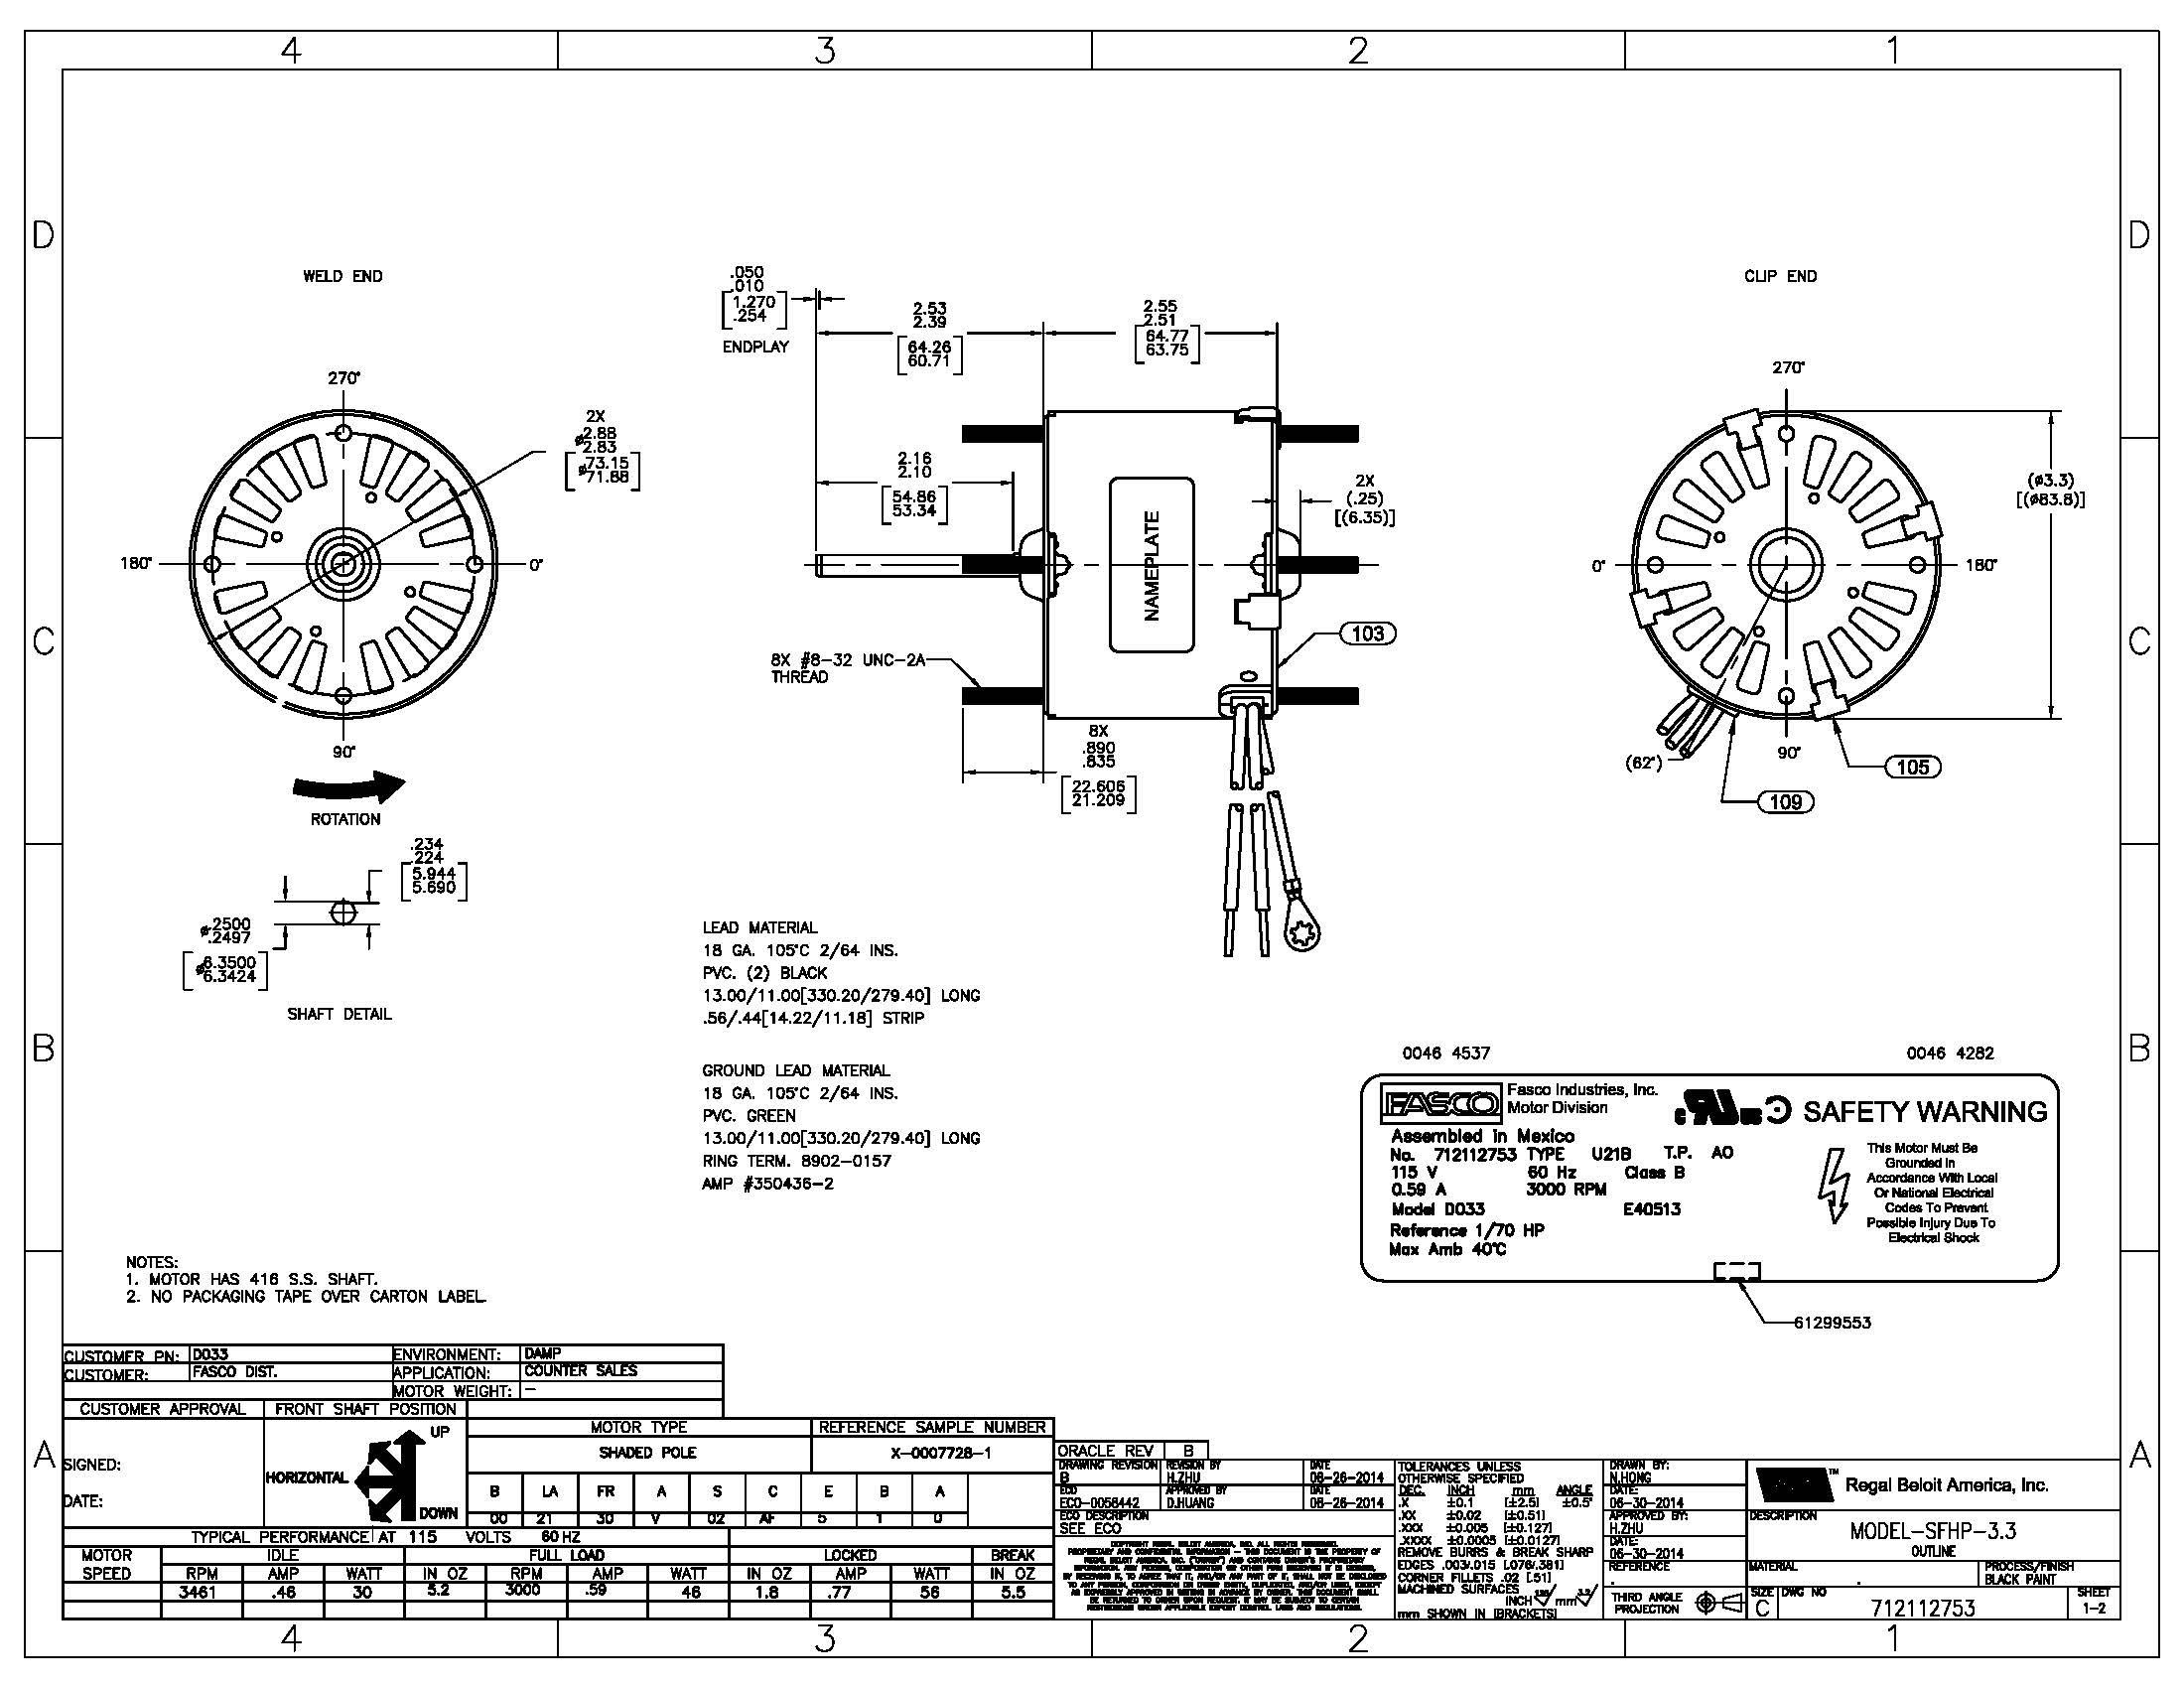 fasco d827 motor wiring diagram 1981 porsche 924 motors download